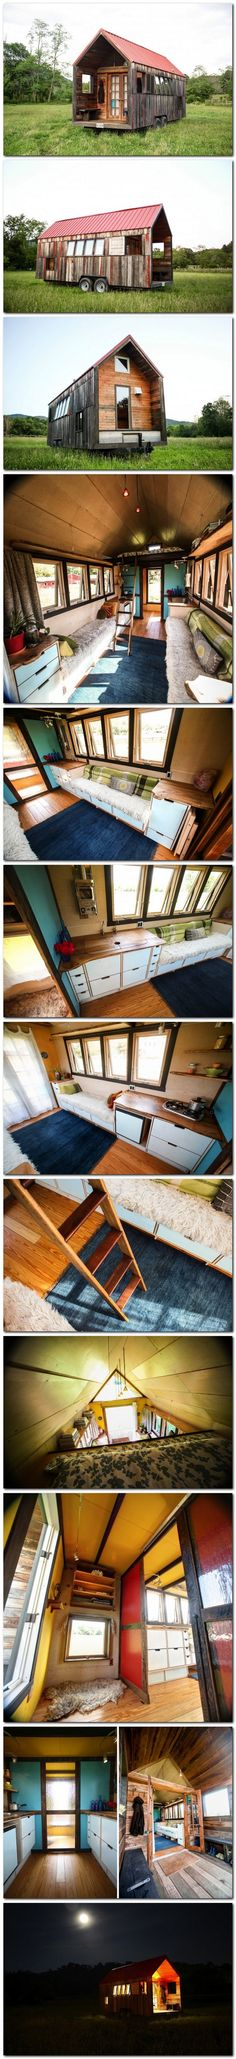 200 square foot pocket shelter mobile house • aaron maret